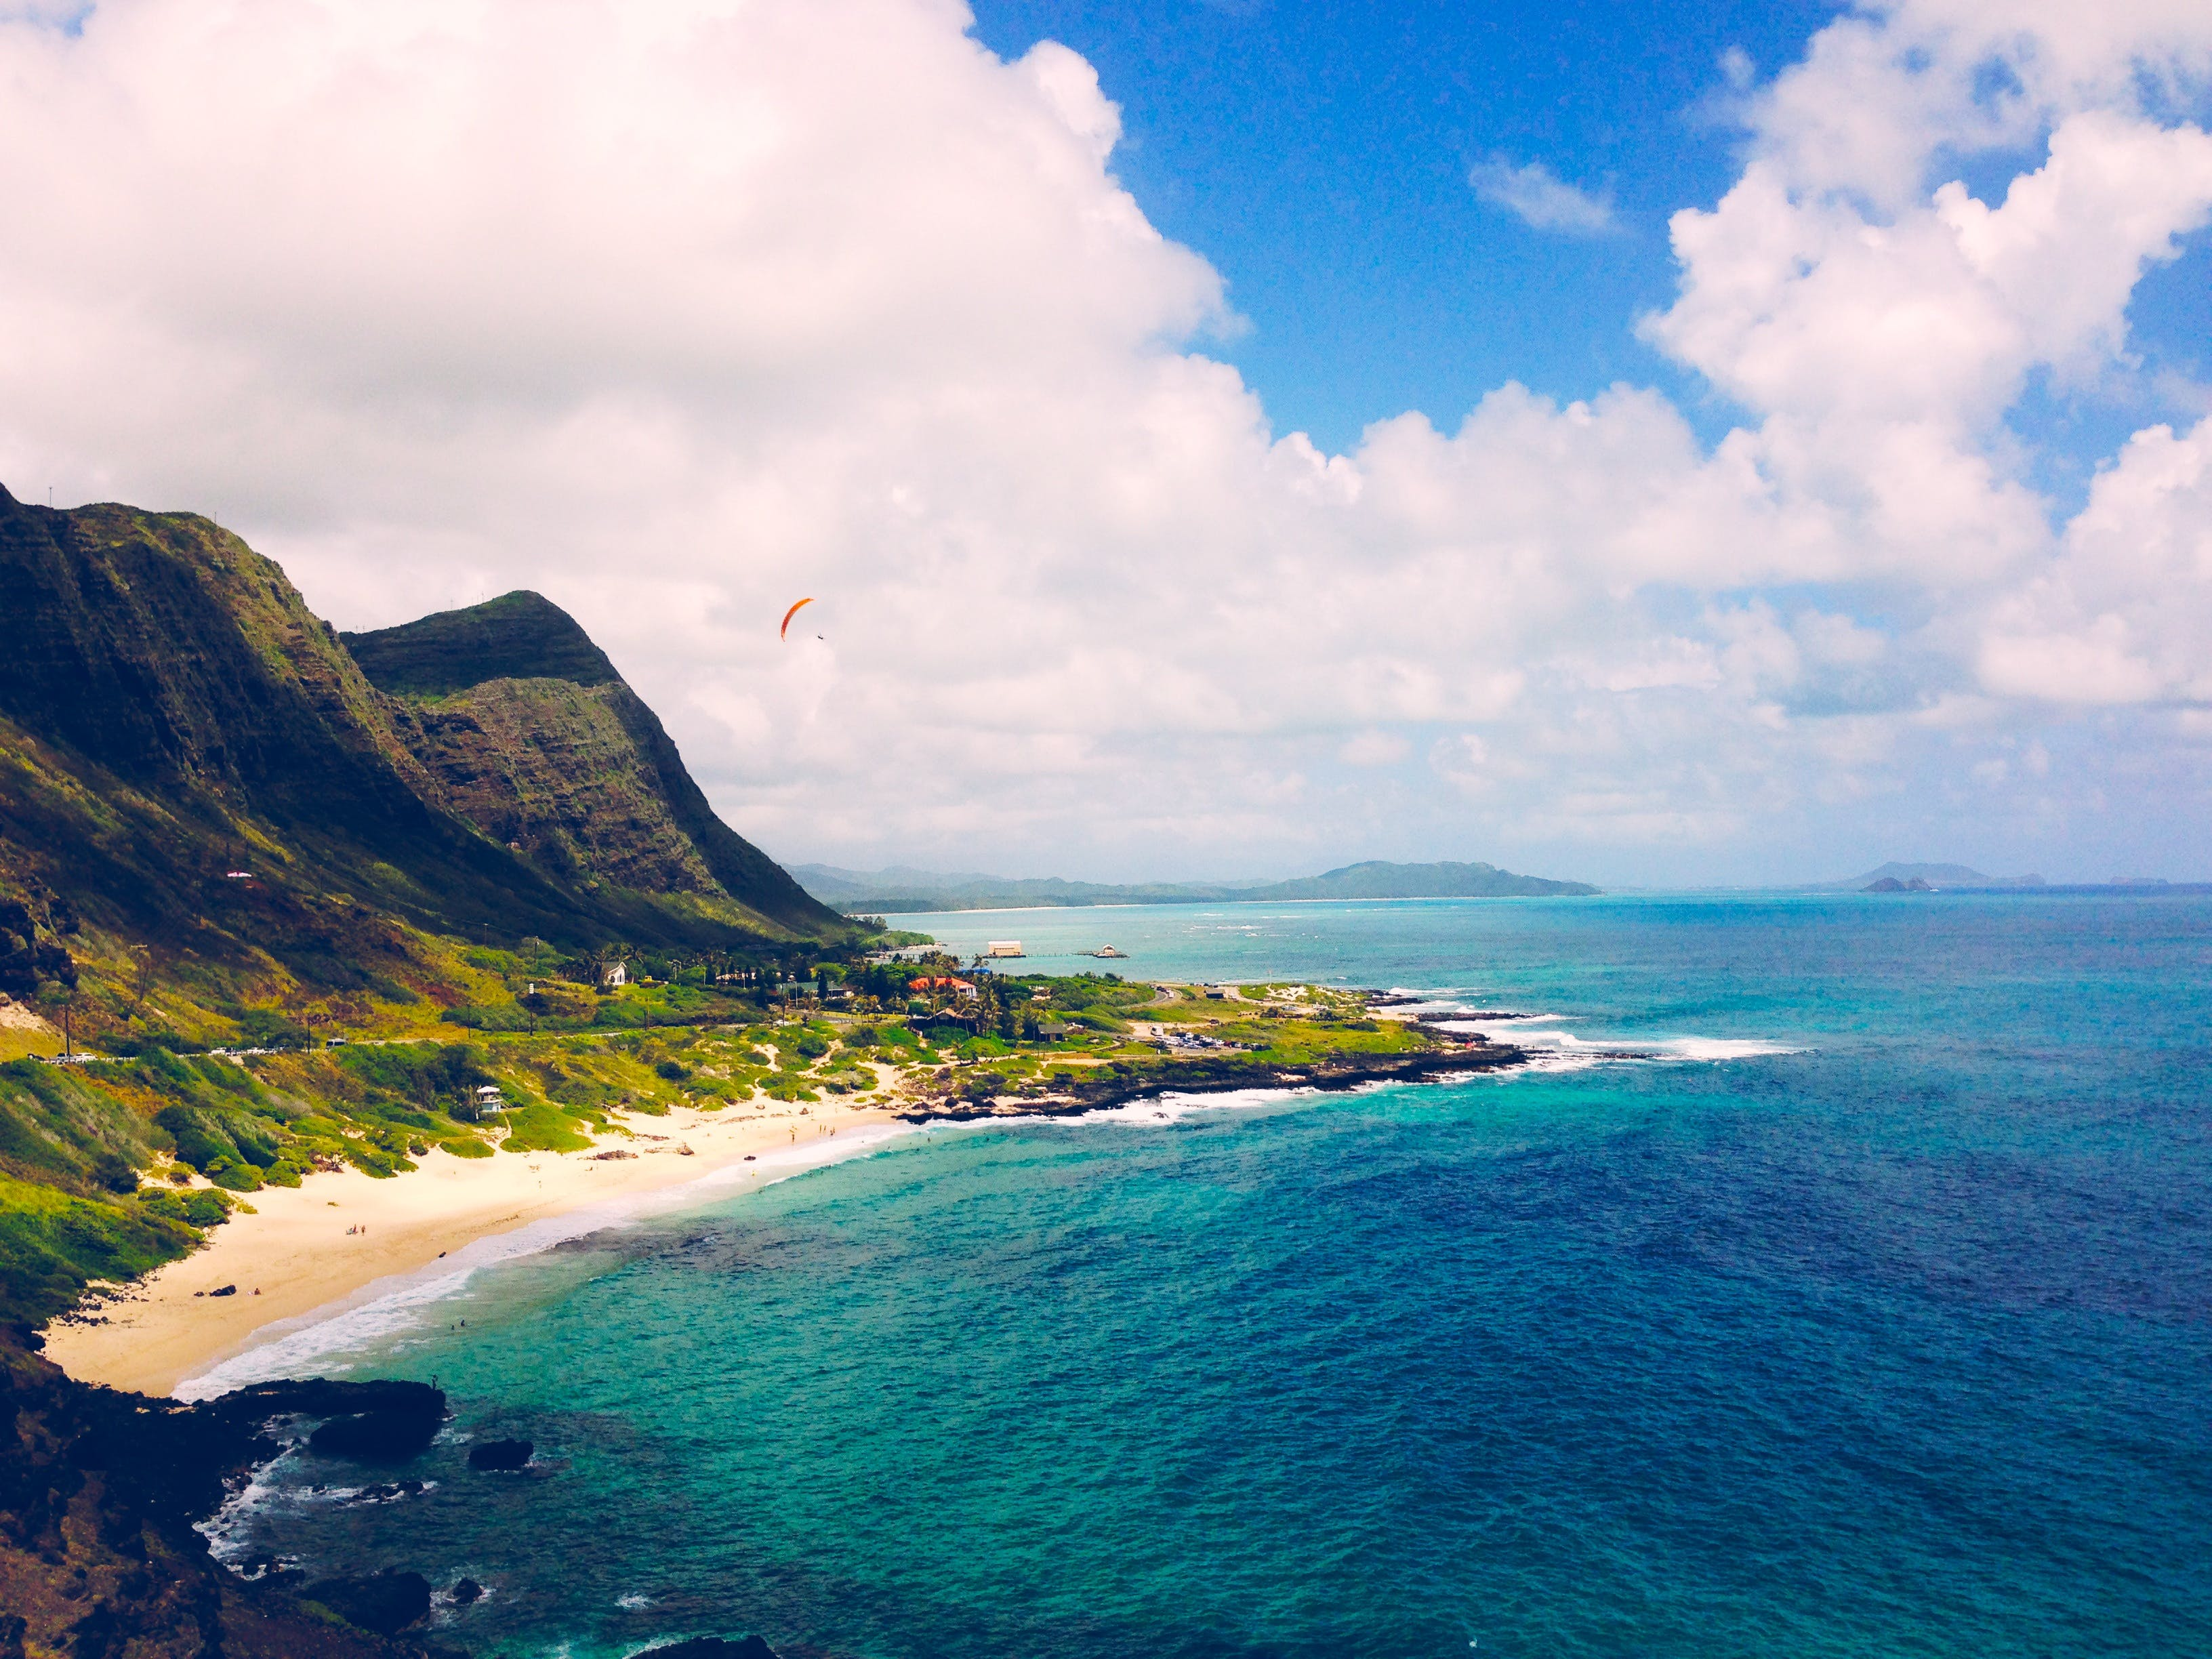 Green Mountains by the Shore Under White Clouds and Blue Sky